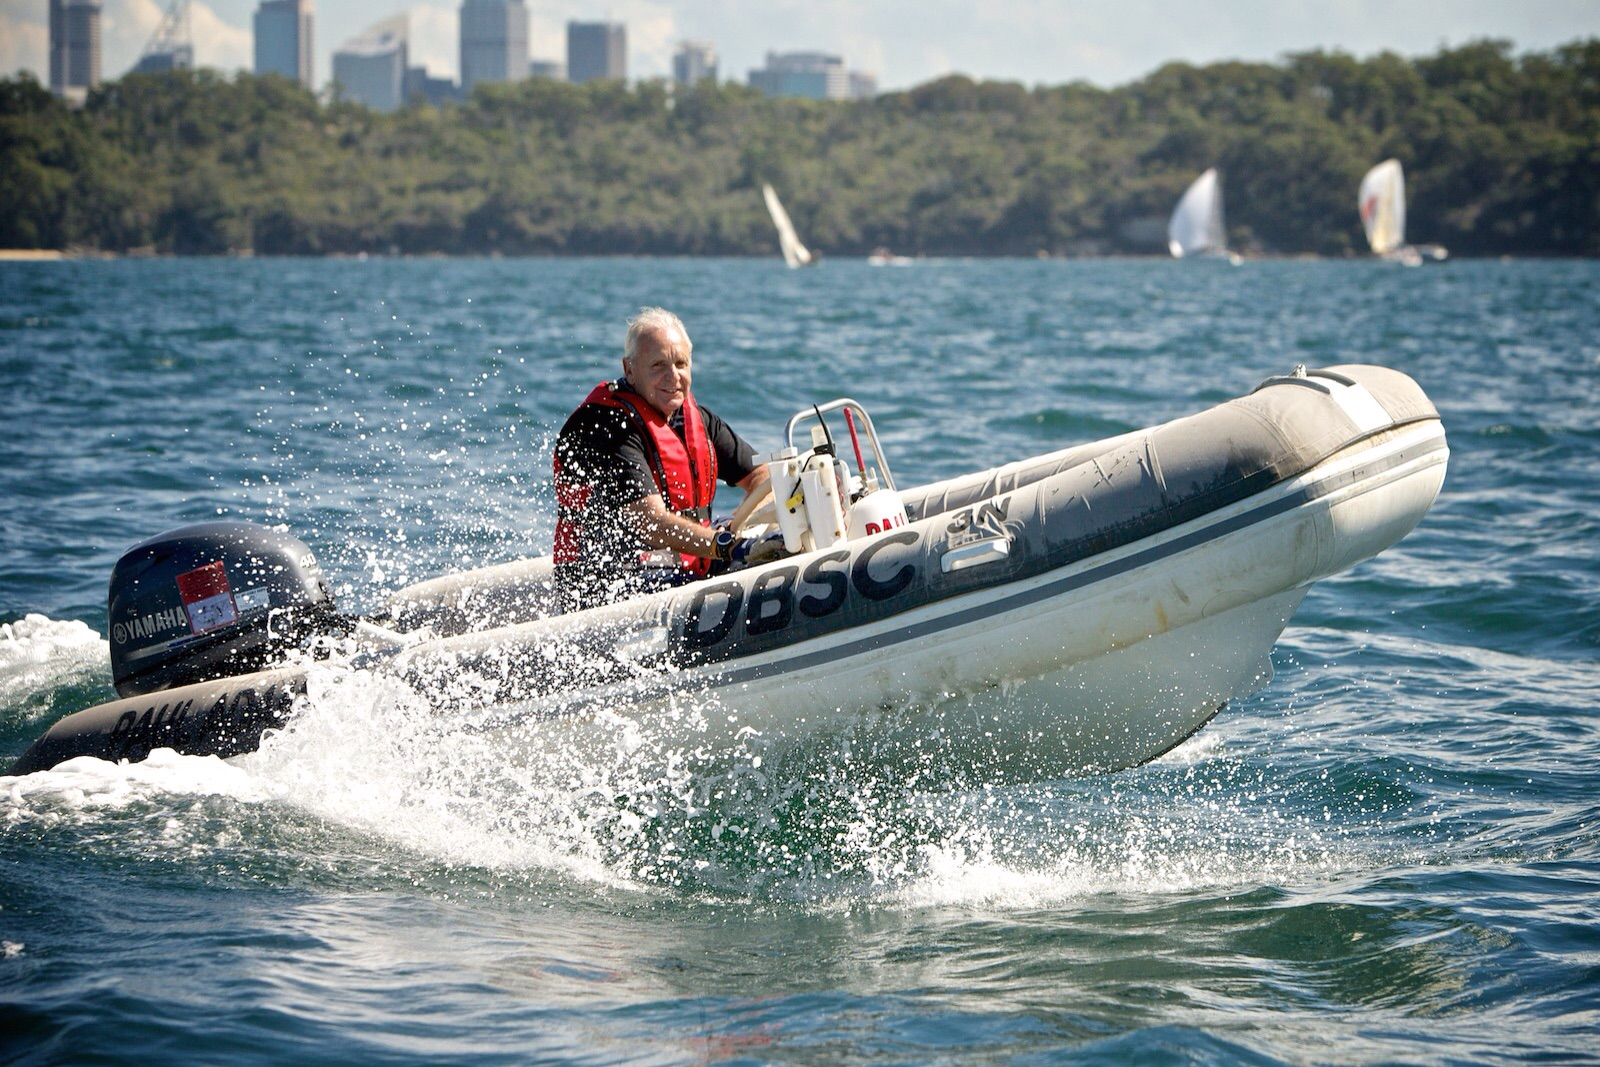 What could be finer than cruising the harbour in our RIB? We'll even lend you a hat